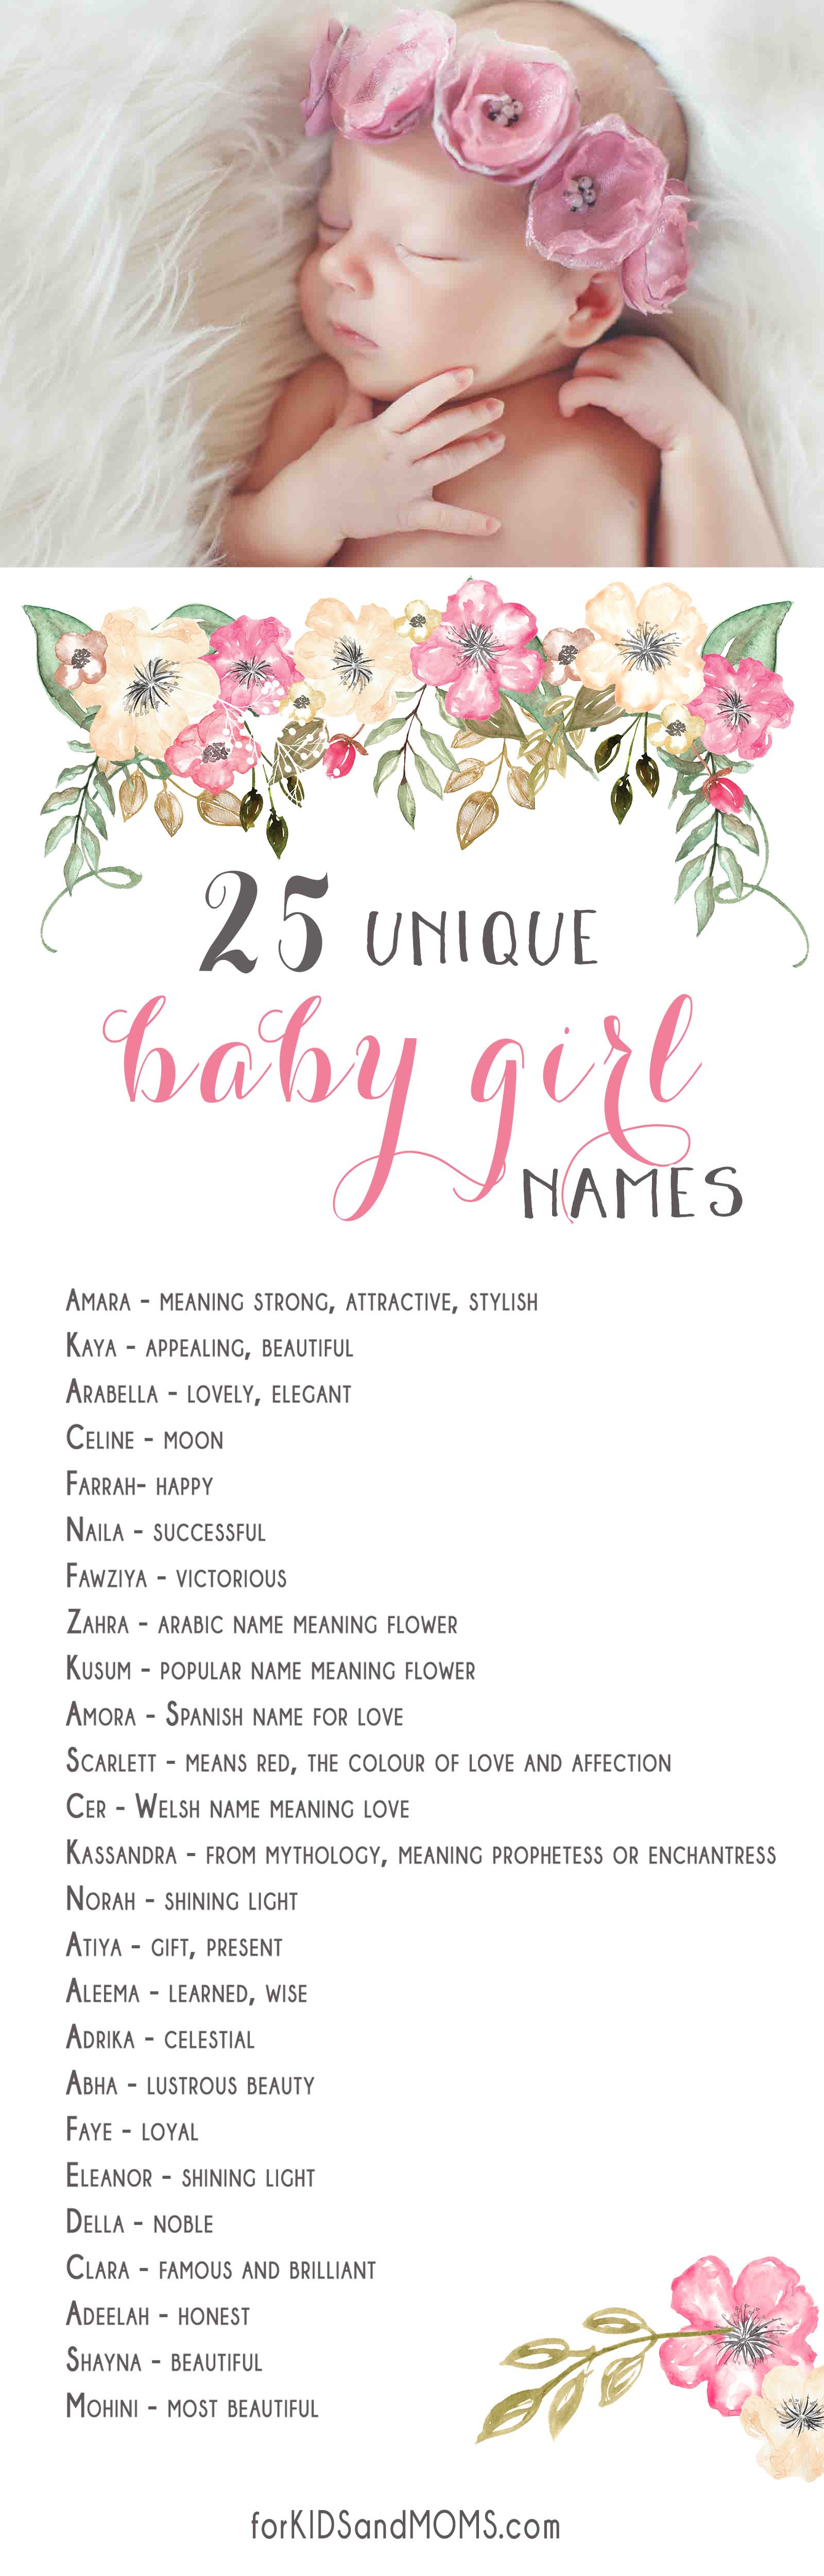 17 Best images about Baby Names on Pinterest | Life online ... |Unique Baby Names And Meanings